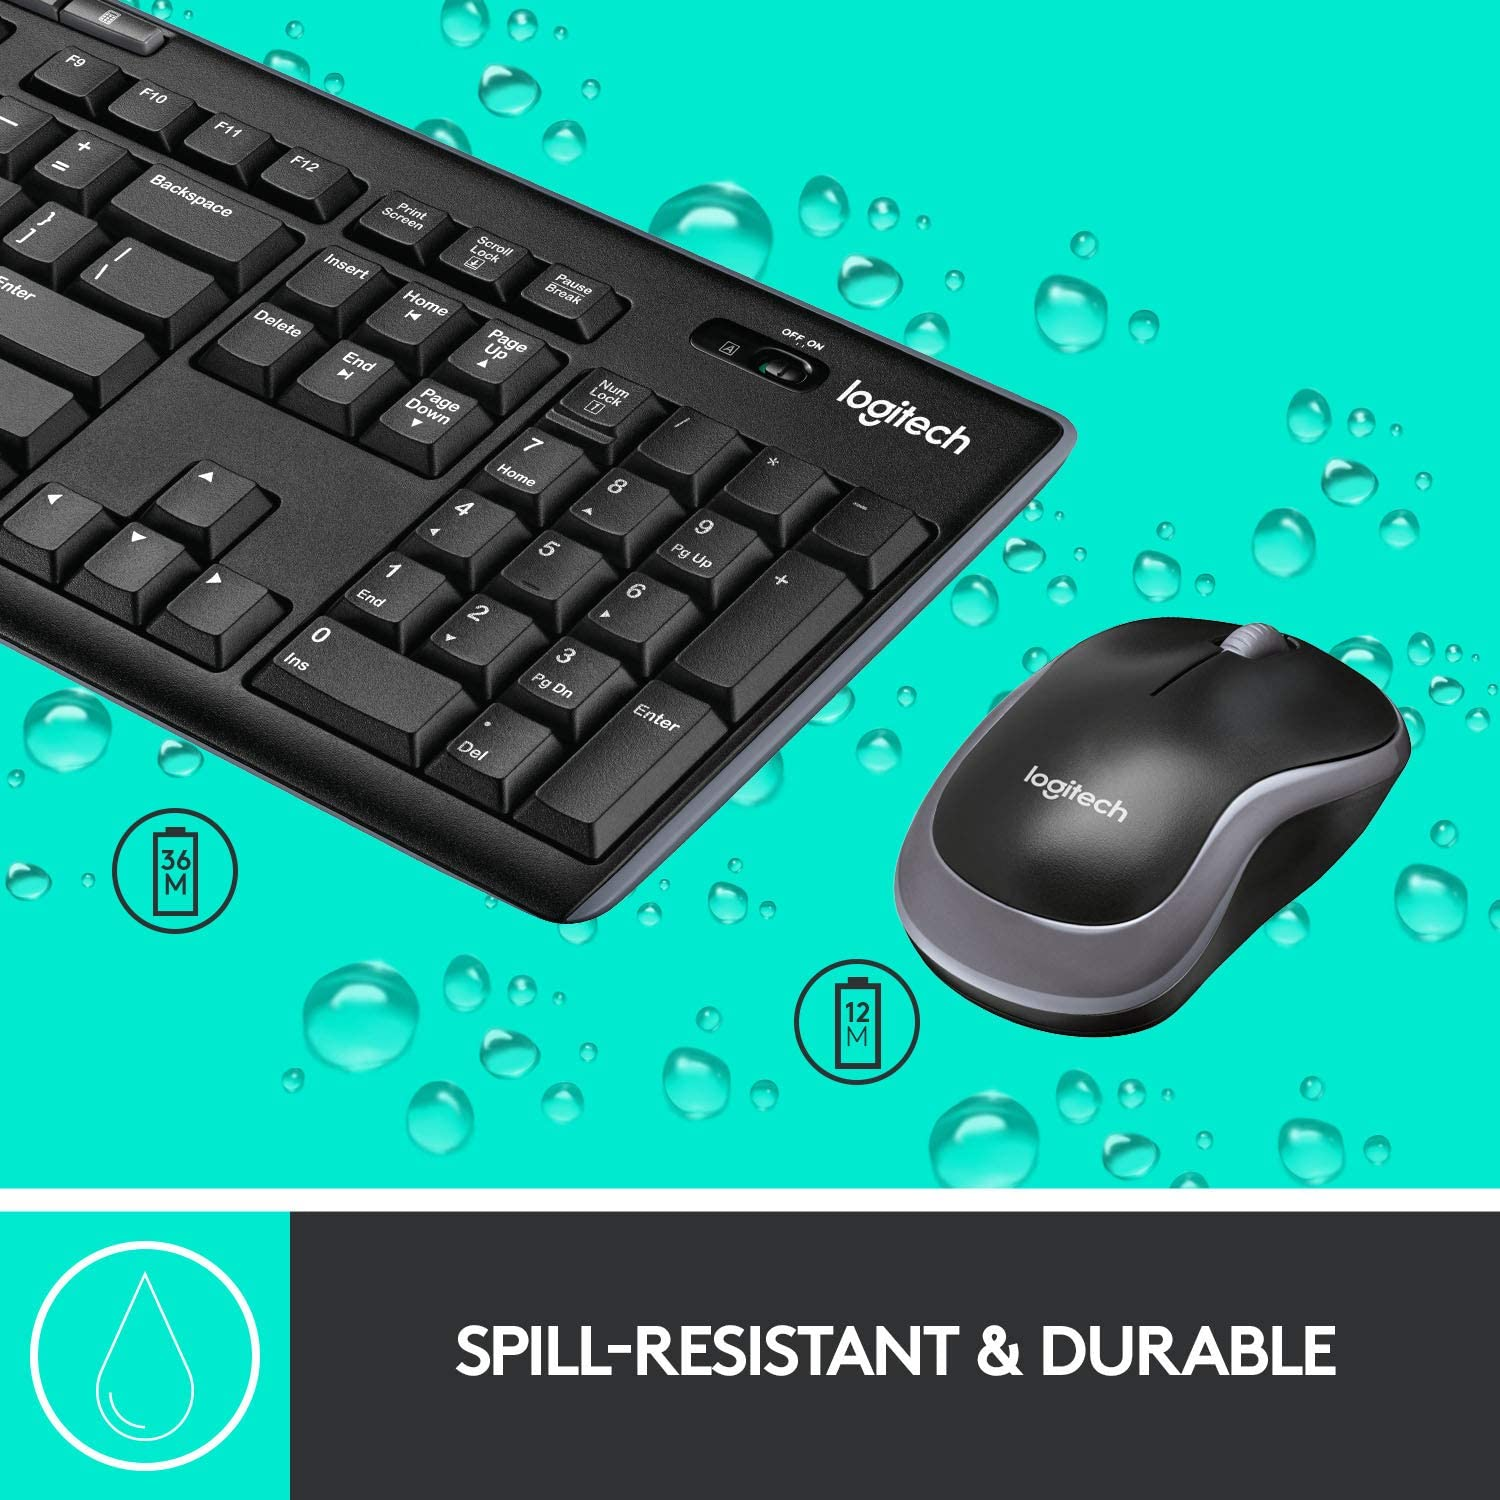 Review of Logitech MK270 Wireless Keyboard and Mouse Combo